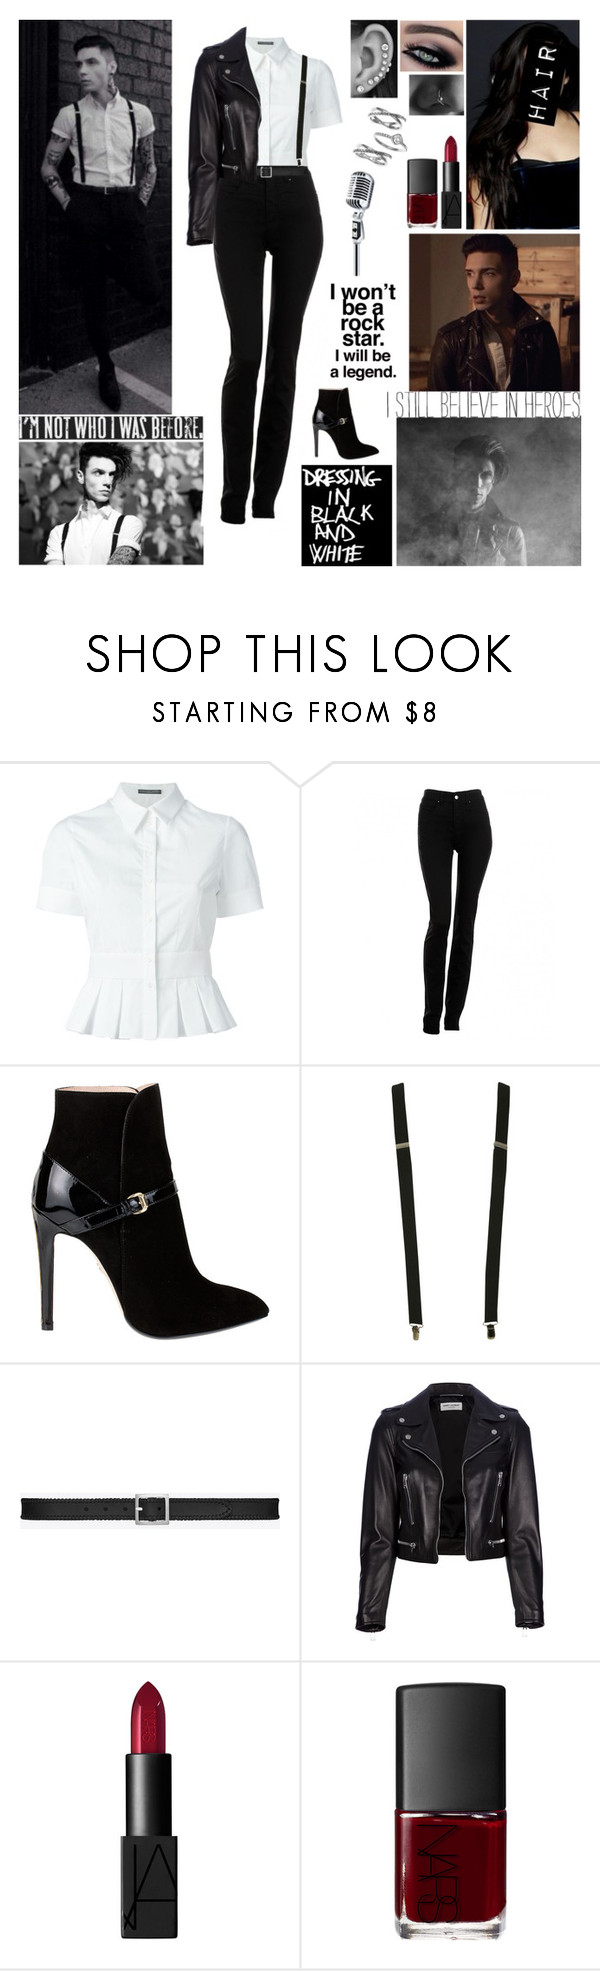 """""""✘ Andy Black Style Steal ✘ We do it our own way, no matter what they try to say about it. We've got our own plans, yeah. They don't need to understand. ✘"""" by blueknight ❤ liked on Polyvore featuring Alexander McQueen, Armani Jeans, Emilio Pucci, Wet Seal, Yves Saint Laurent, NARS Cosmetics and Judith Jack"""